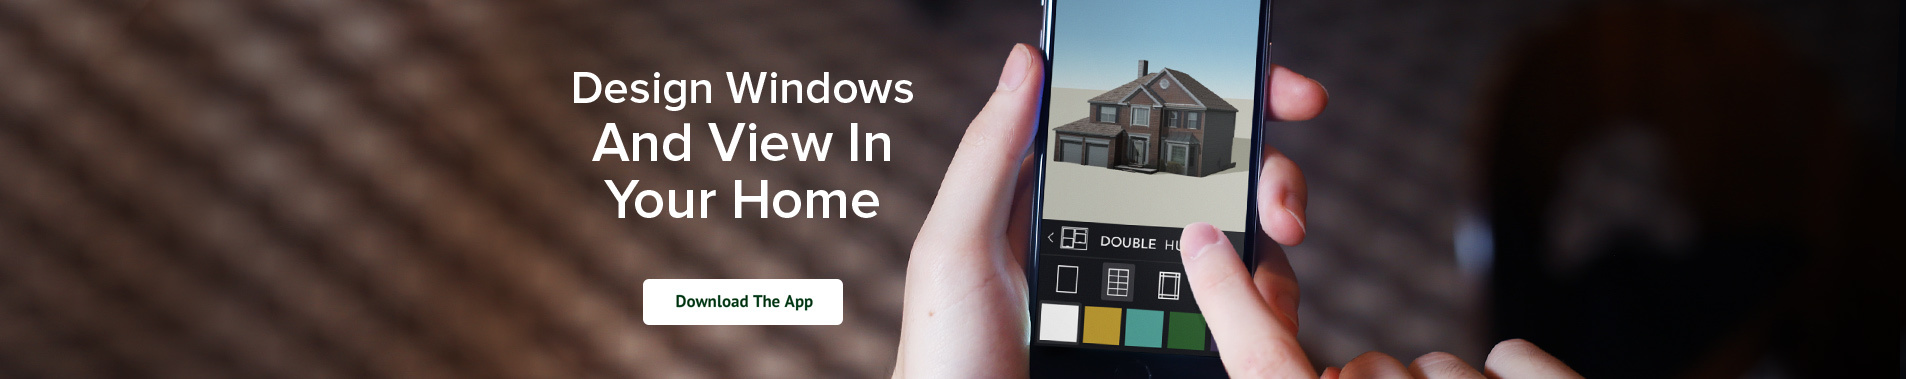 Design Windows with our App